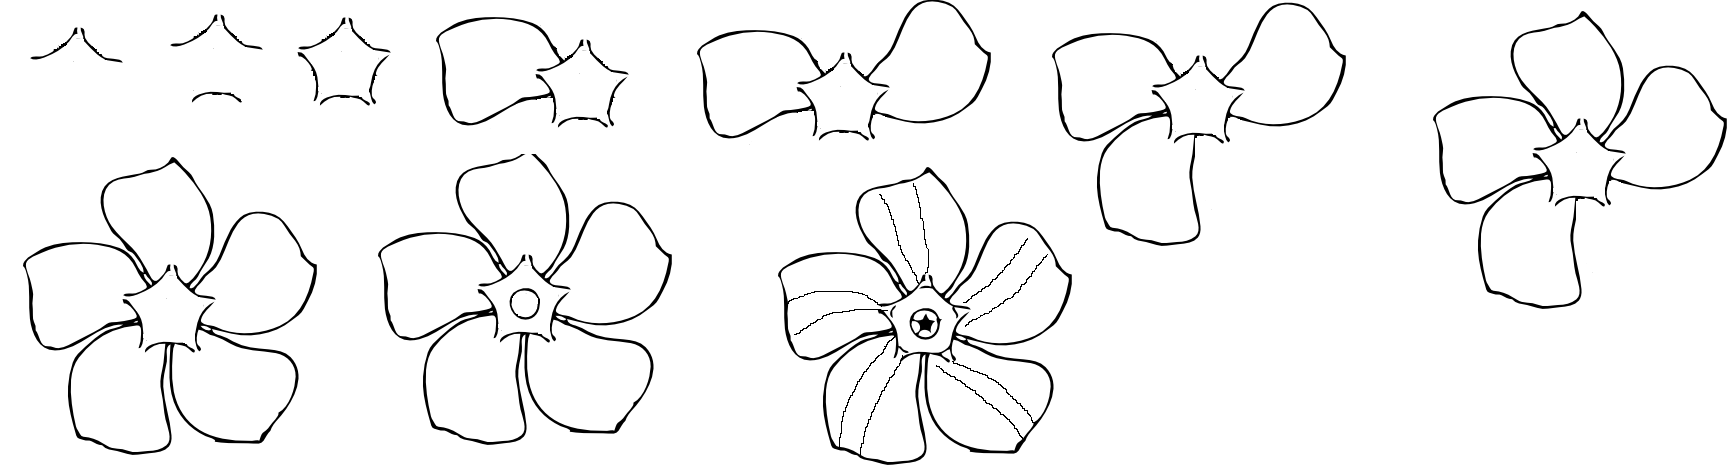 How To Draw A Periwinkle Flower. Easy Free Step by Step ...